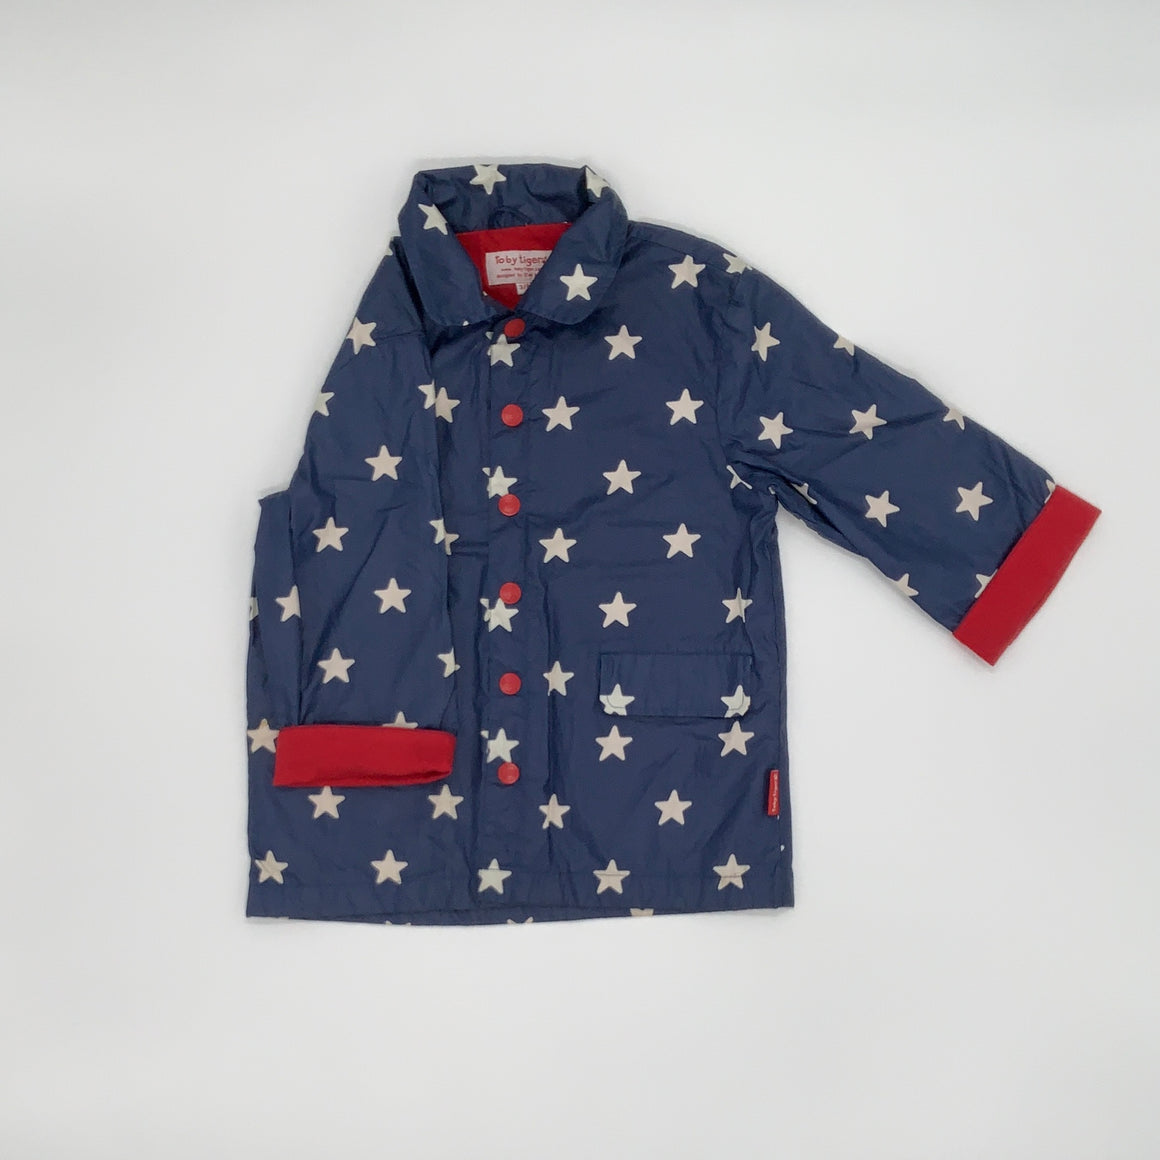 Gently Worn Toby Tiger star raincoat size 3-4 years